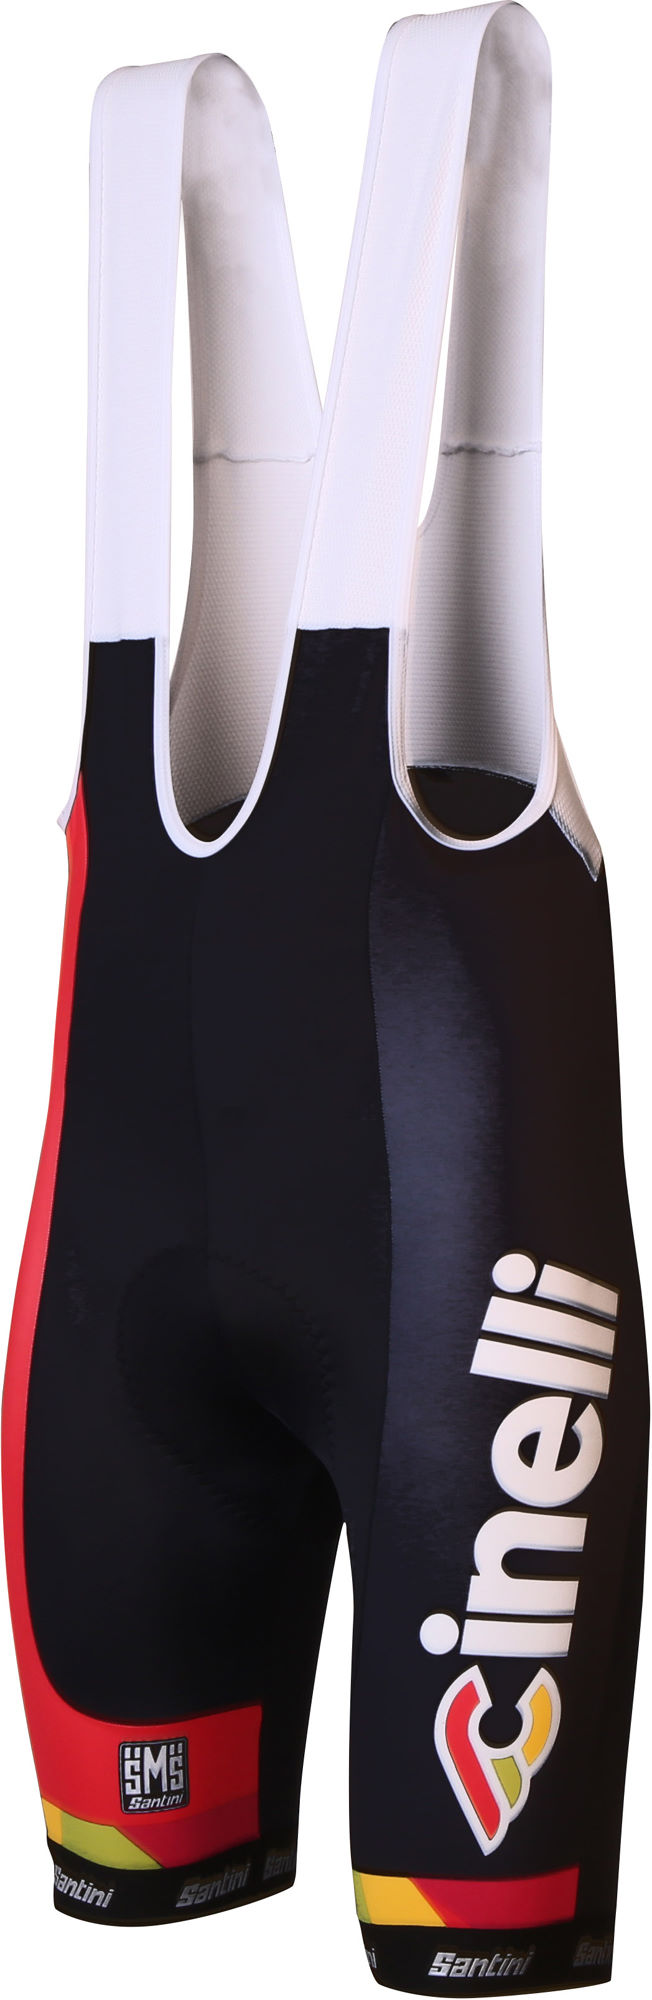 2017 Cinelli Chrome Team Cycling Bib Shorts with Max2 Pad made by Santini